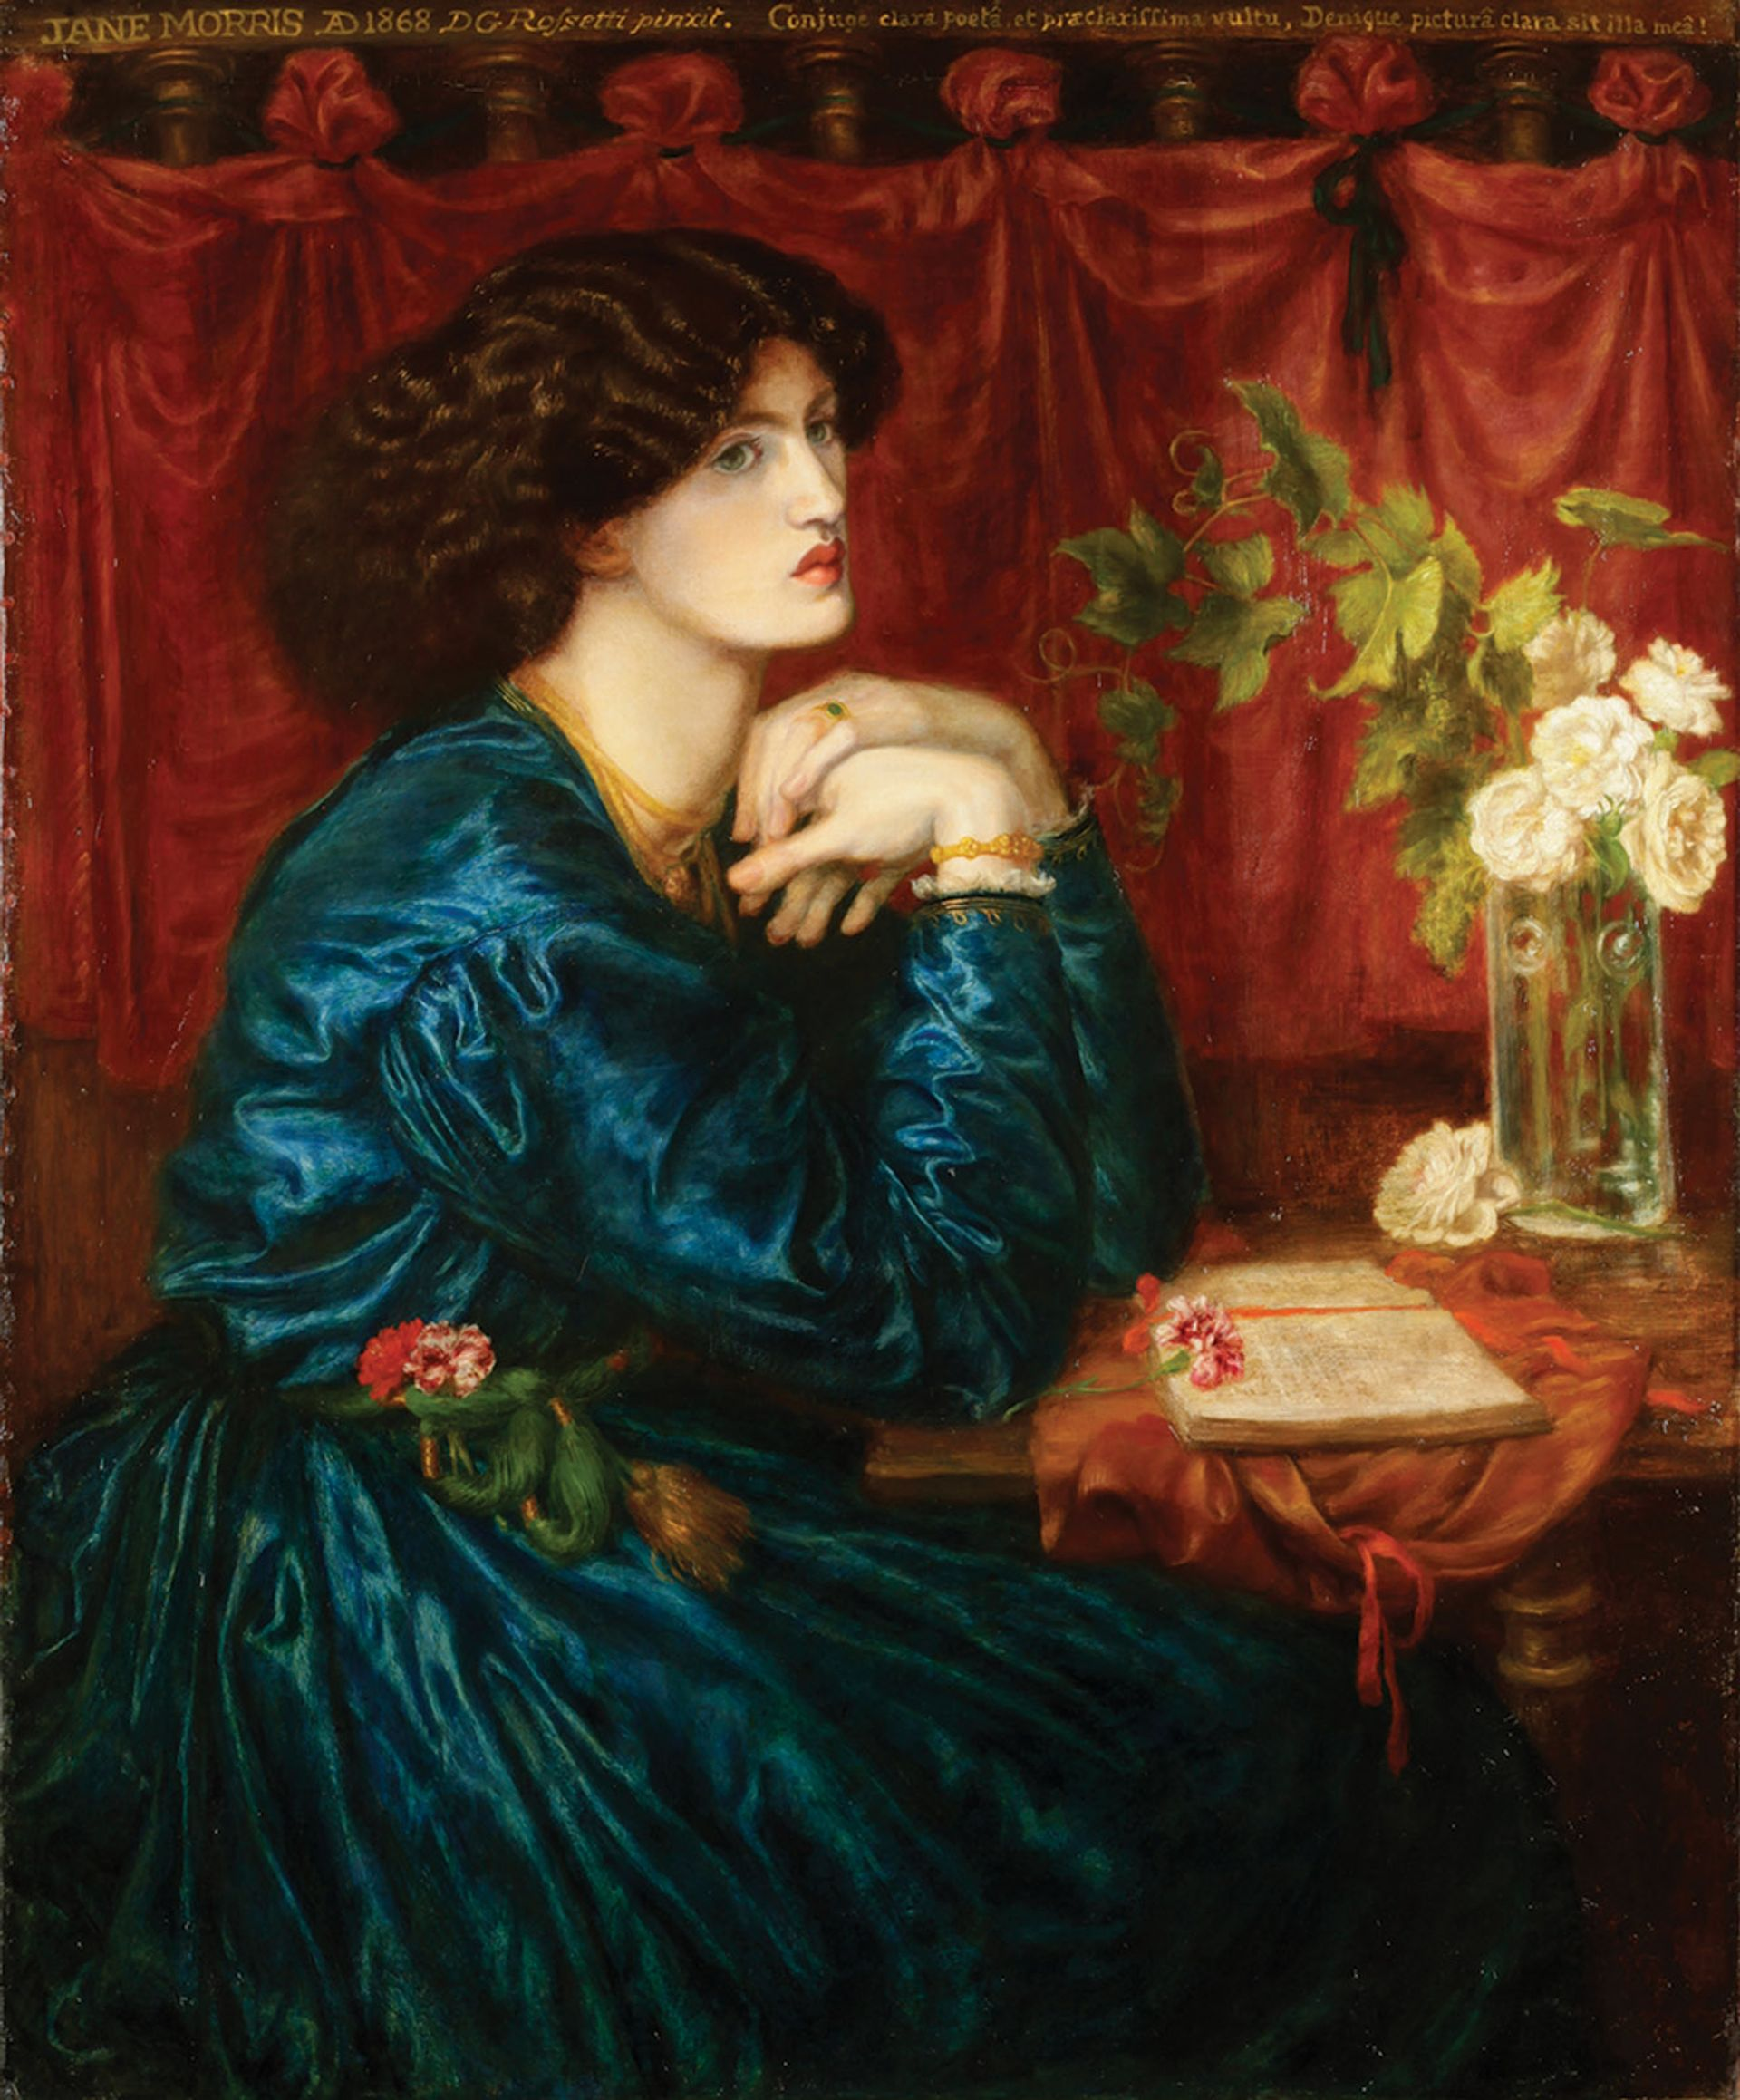 Rossetti's 1868 painting Blue Silk Dress (Jane Morris). The artist would later add the copper hair of his late wife to a painting of Morris as Proserpine, the queen of the underworld © Society of Antiquaries of London; Kelmscott Manor